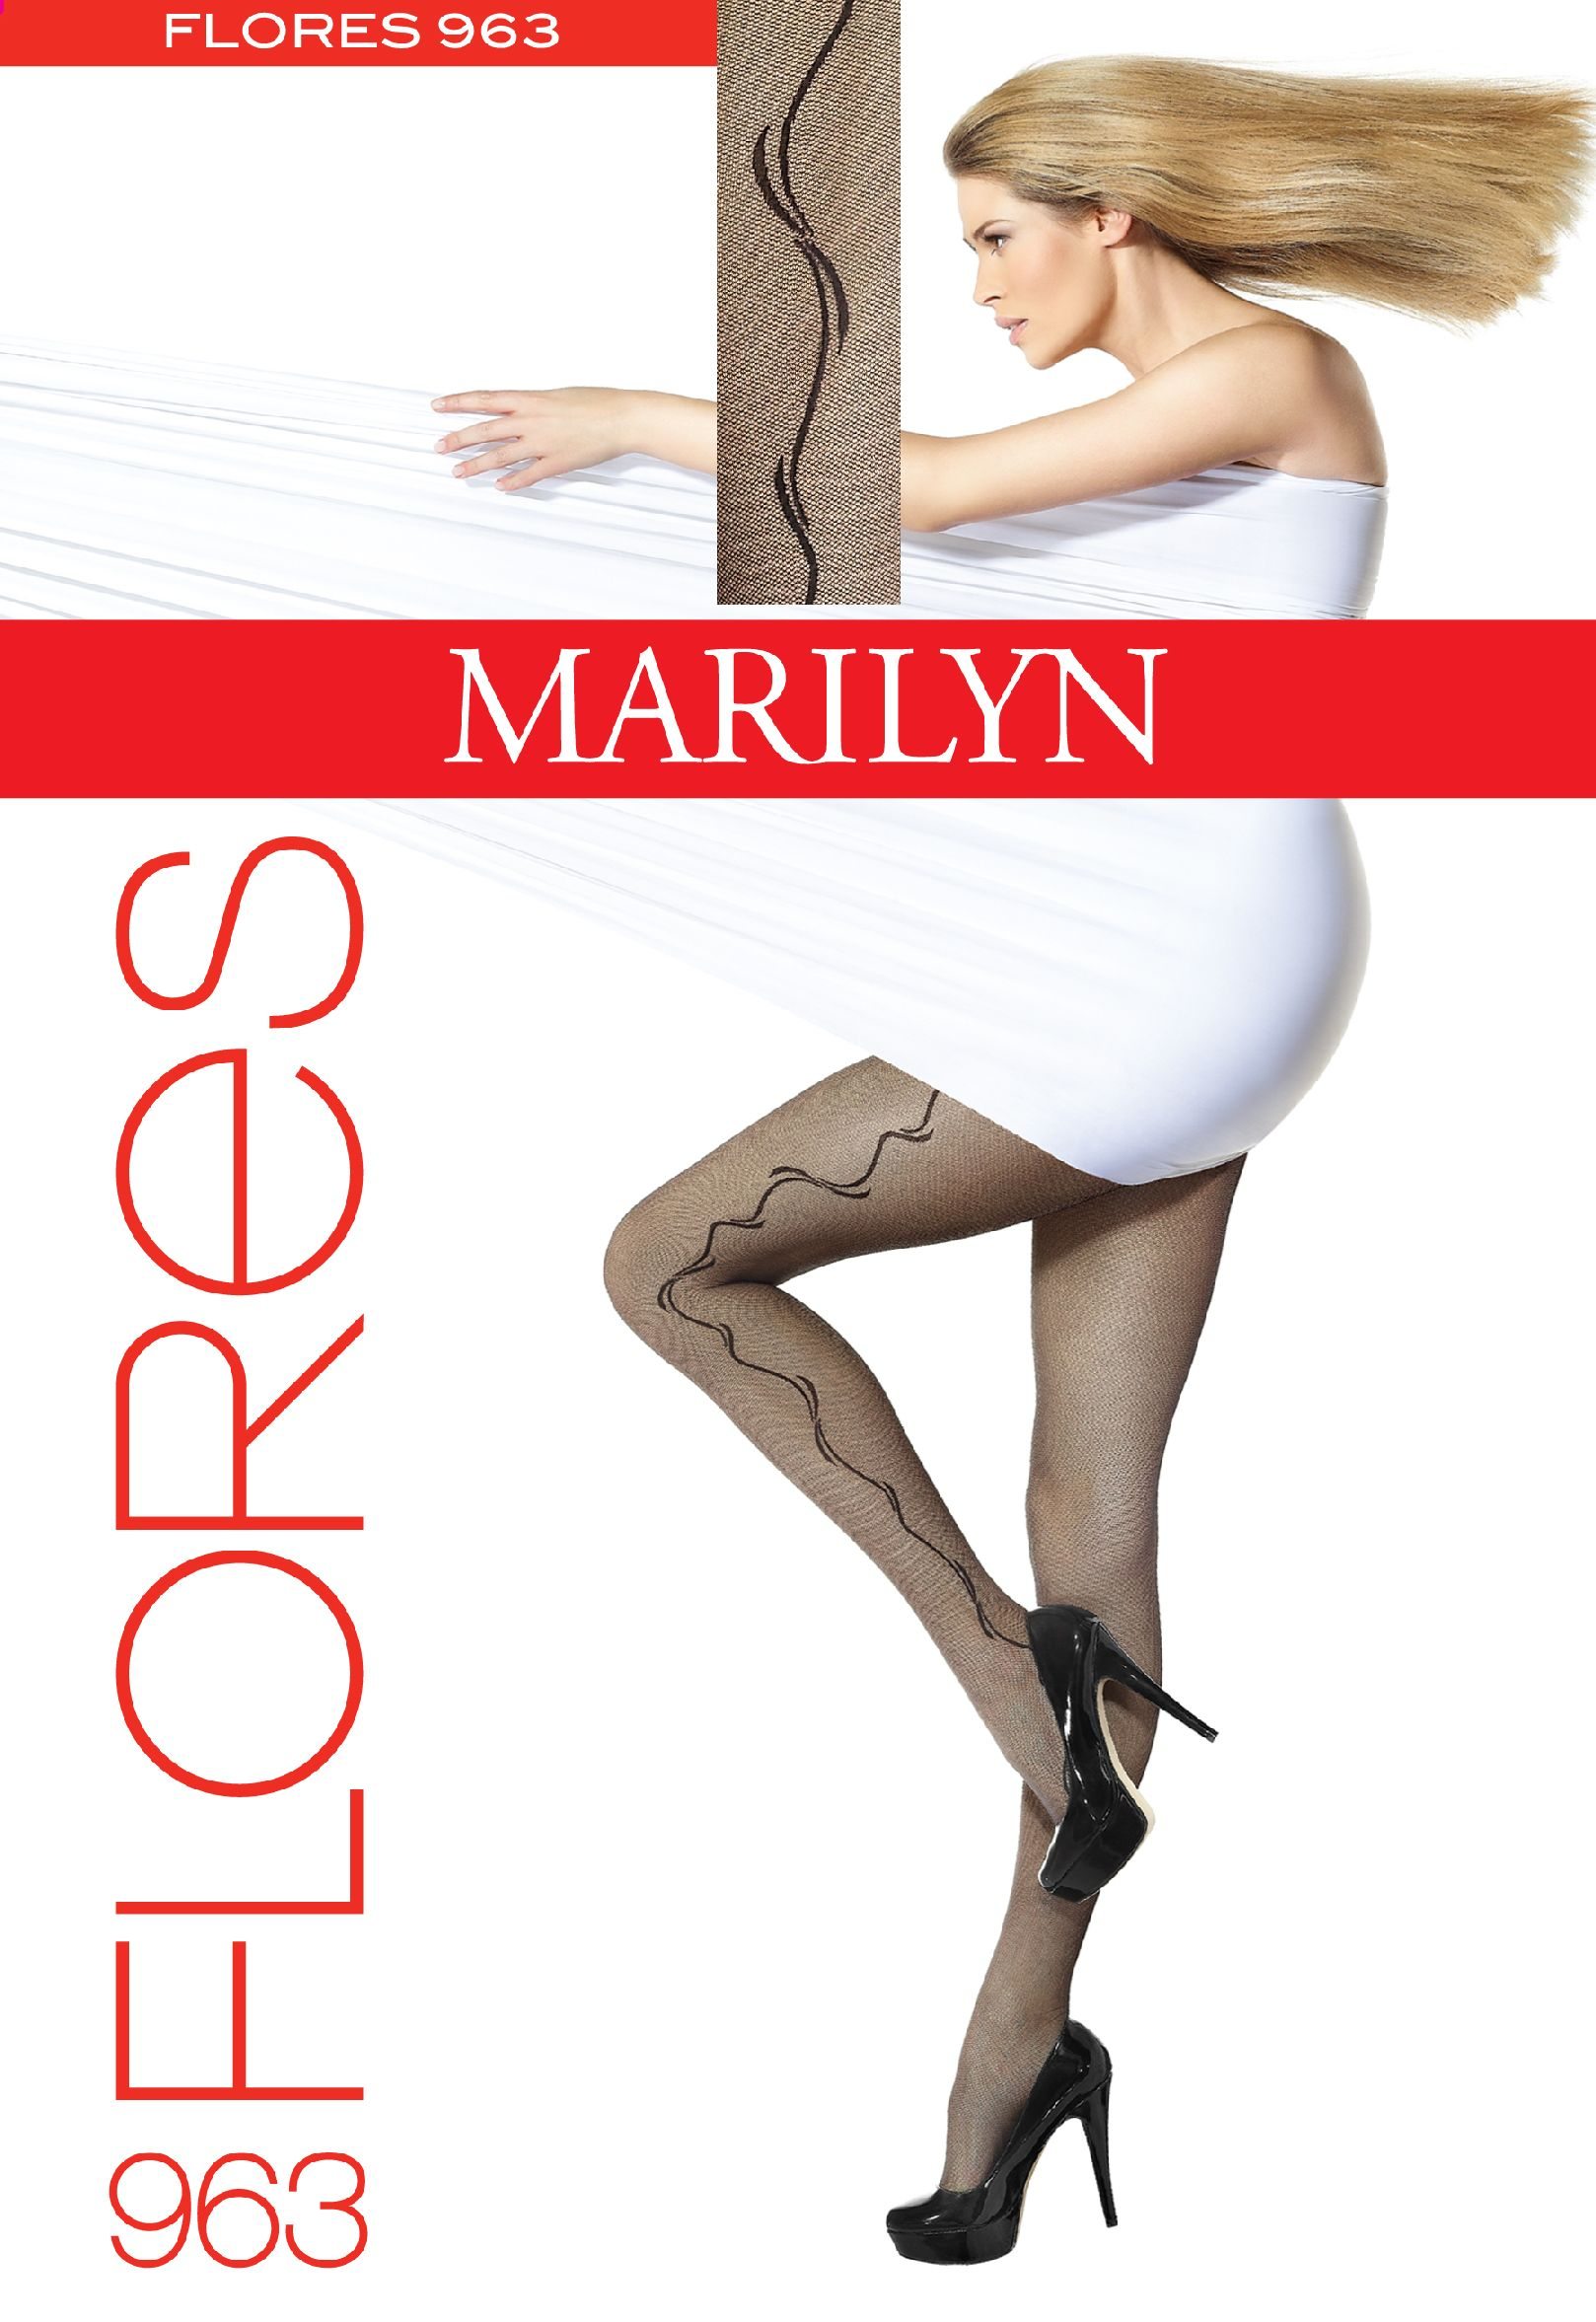 TIGHTS FLORES 963